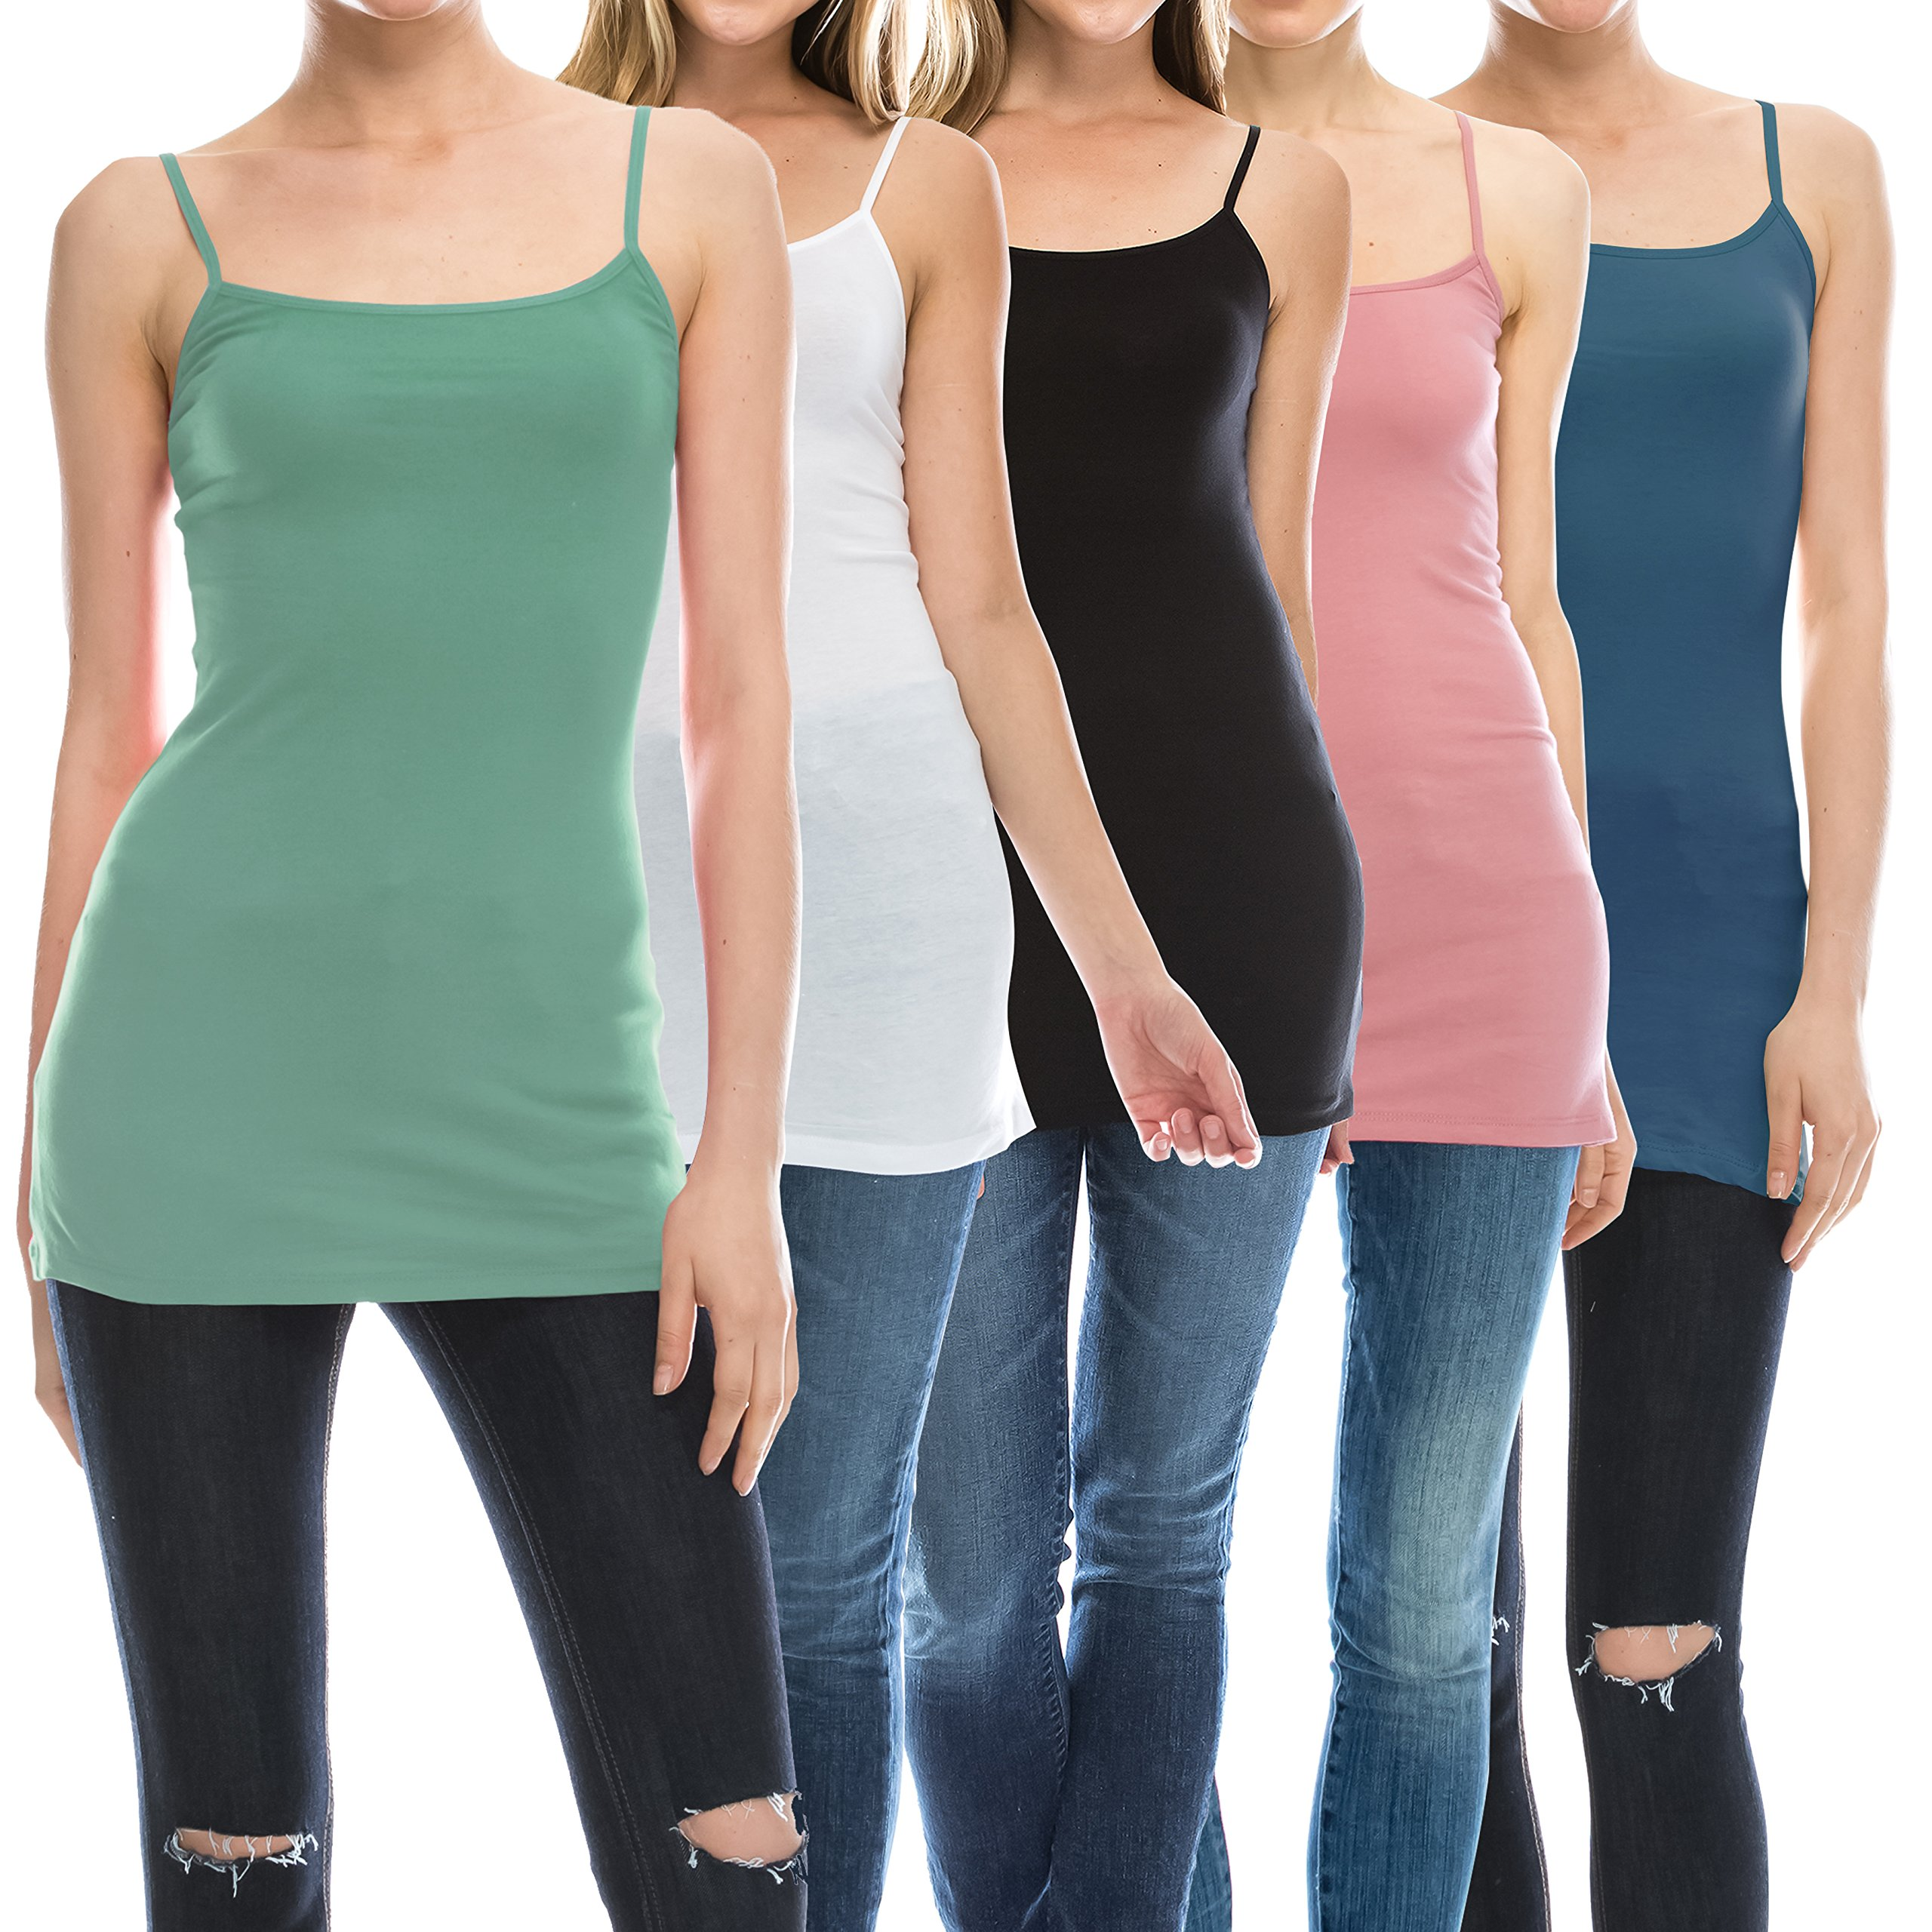 5827d7c2e95 Nolabel Multi Pack Womens Basic Long Length Adjustable Spaghetti Strap Cami Tank  Top Camisole Plus (